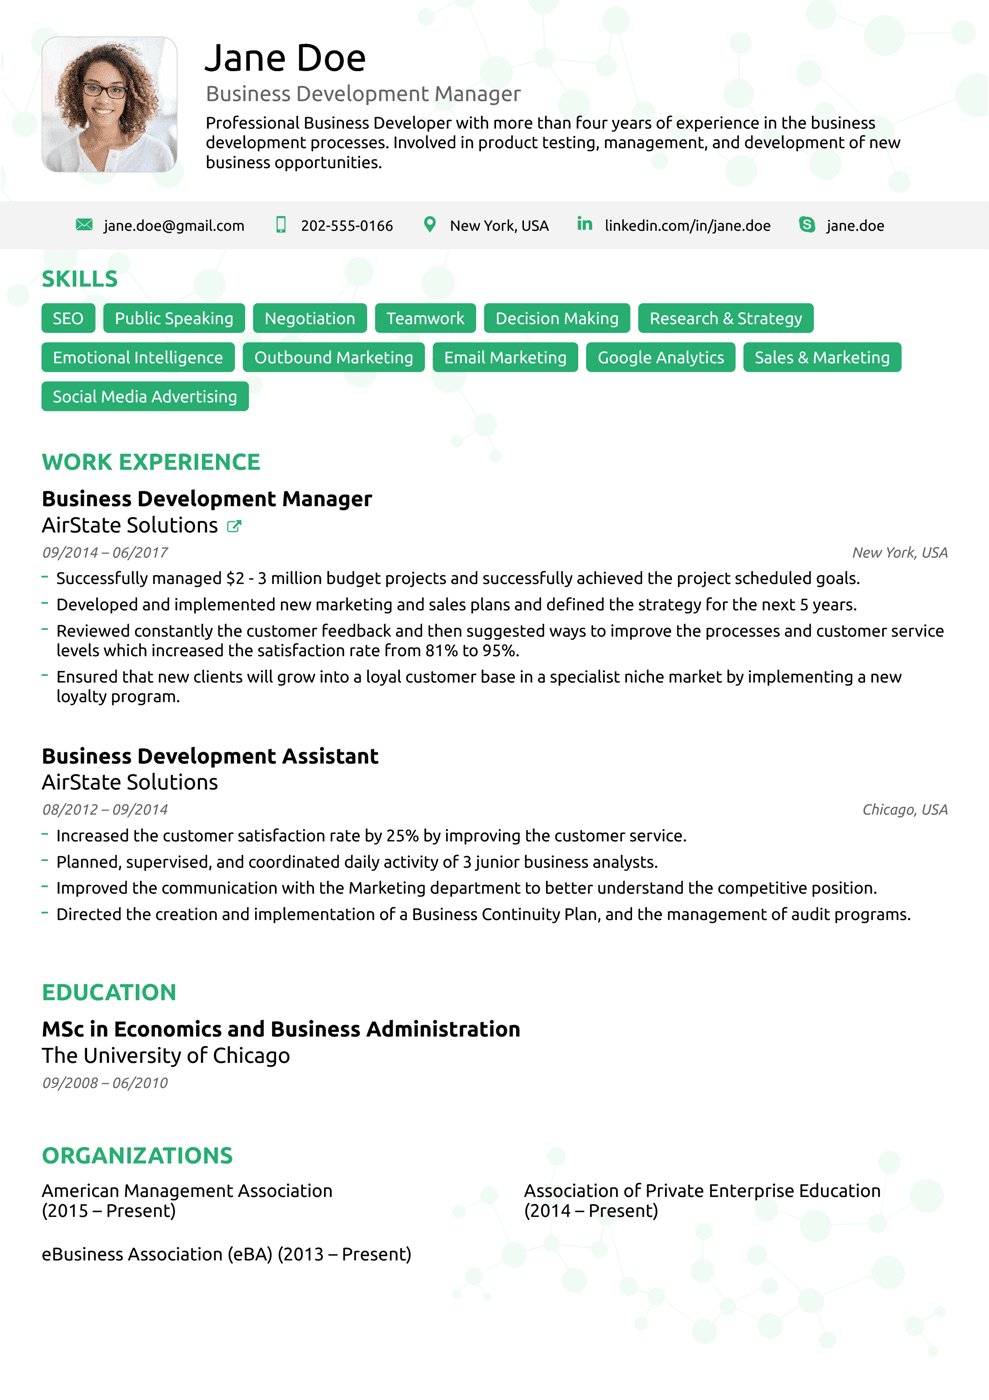 Executive Resume Template. high level executive resume cute executive level resume templates. global operations director coo chief operations officer resume sample. resume templates in word format unique executive resume template word samples hi res wallpaper photographs. executive resume blue 2pg1. executive resume template word professional resume template for word resume cover letter template